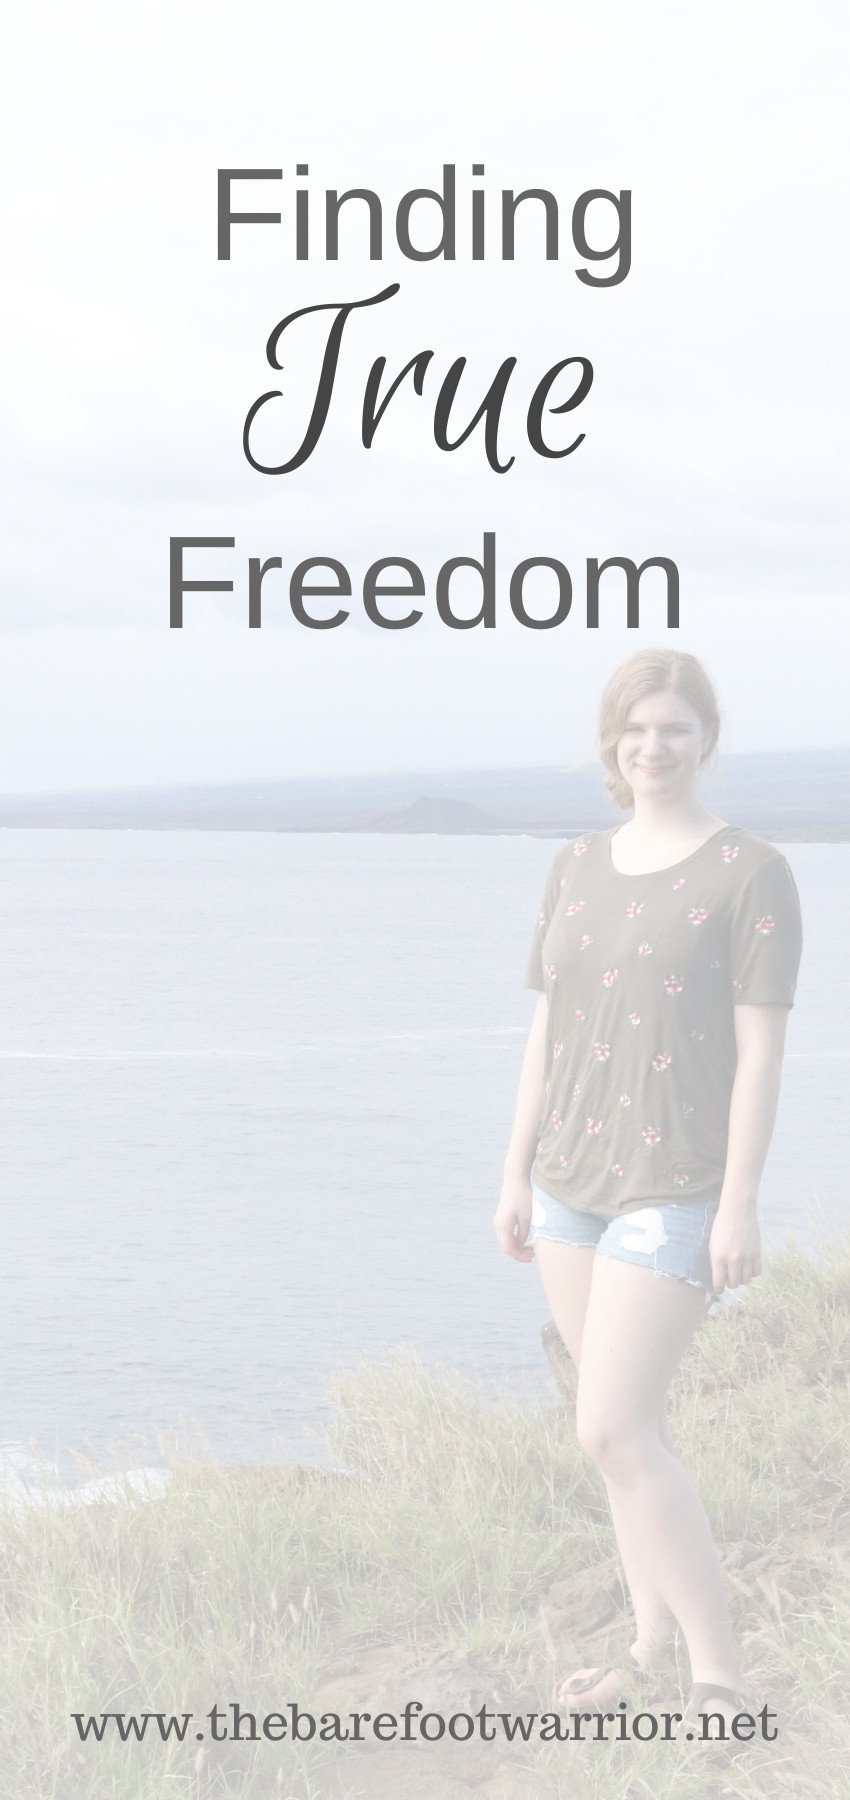 Finding True Freedom